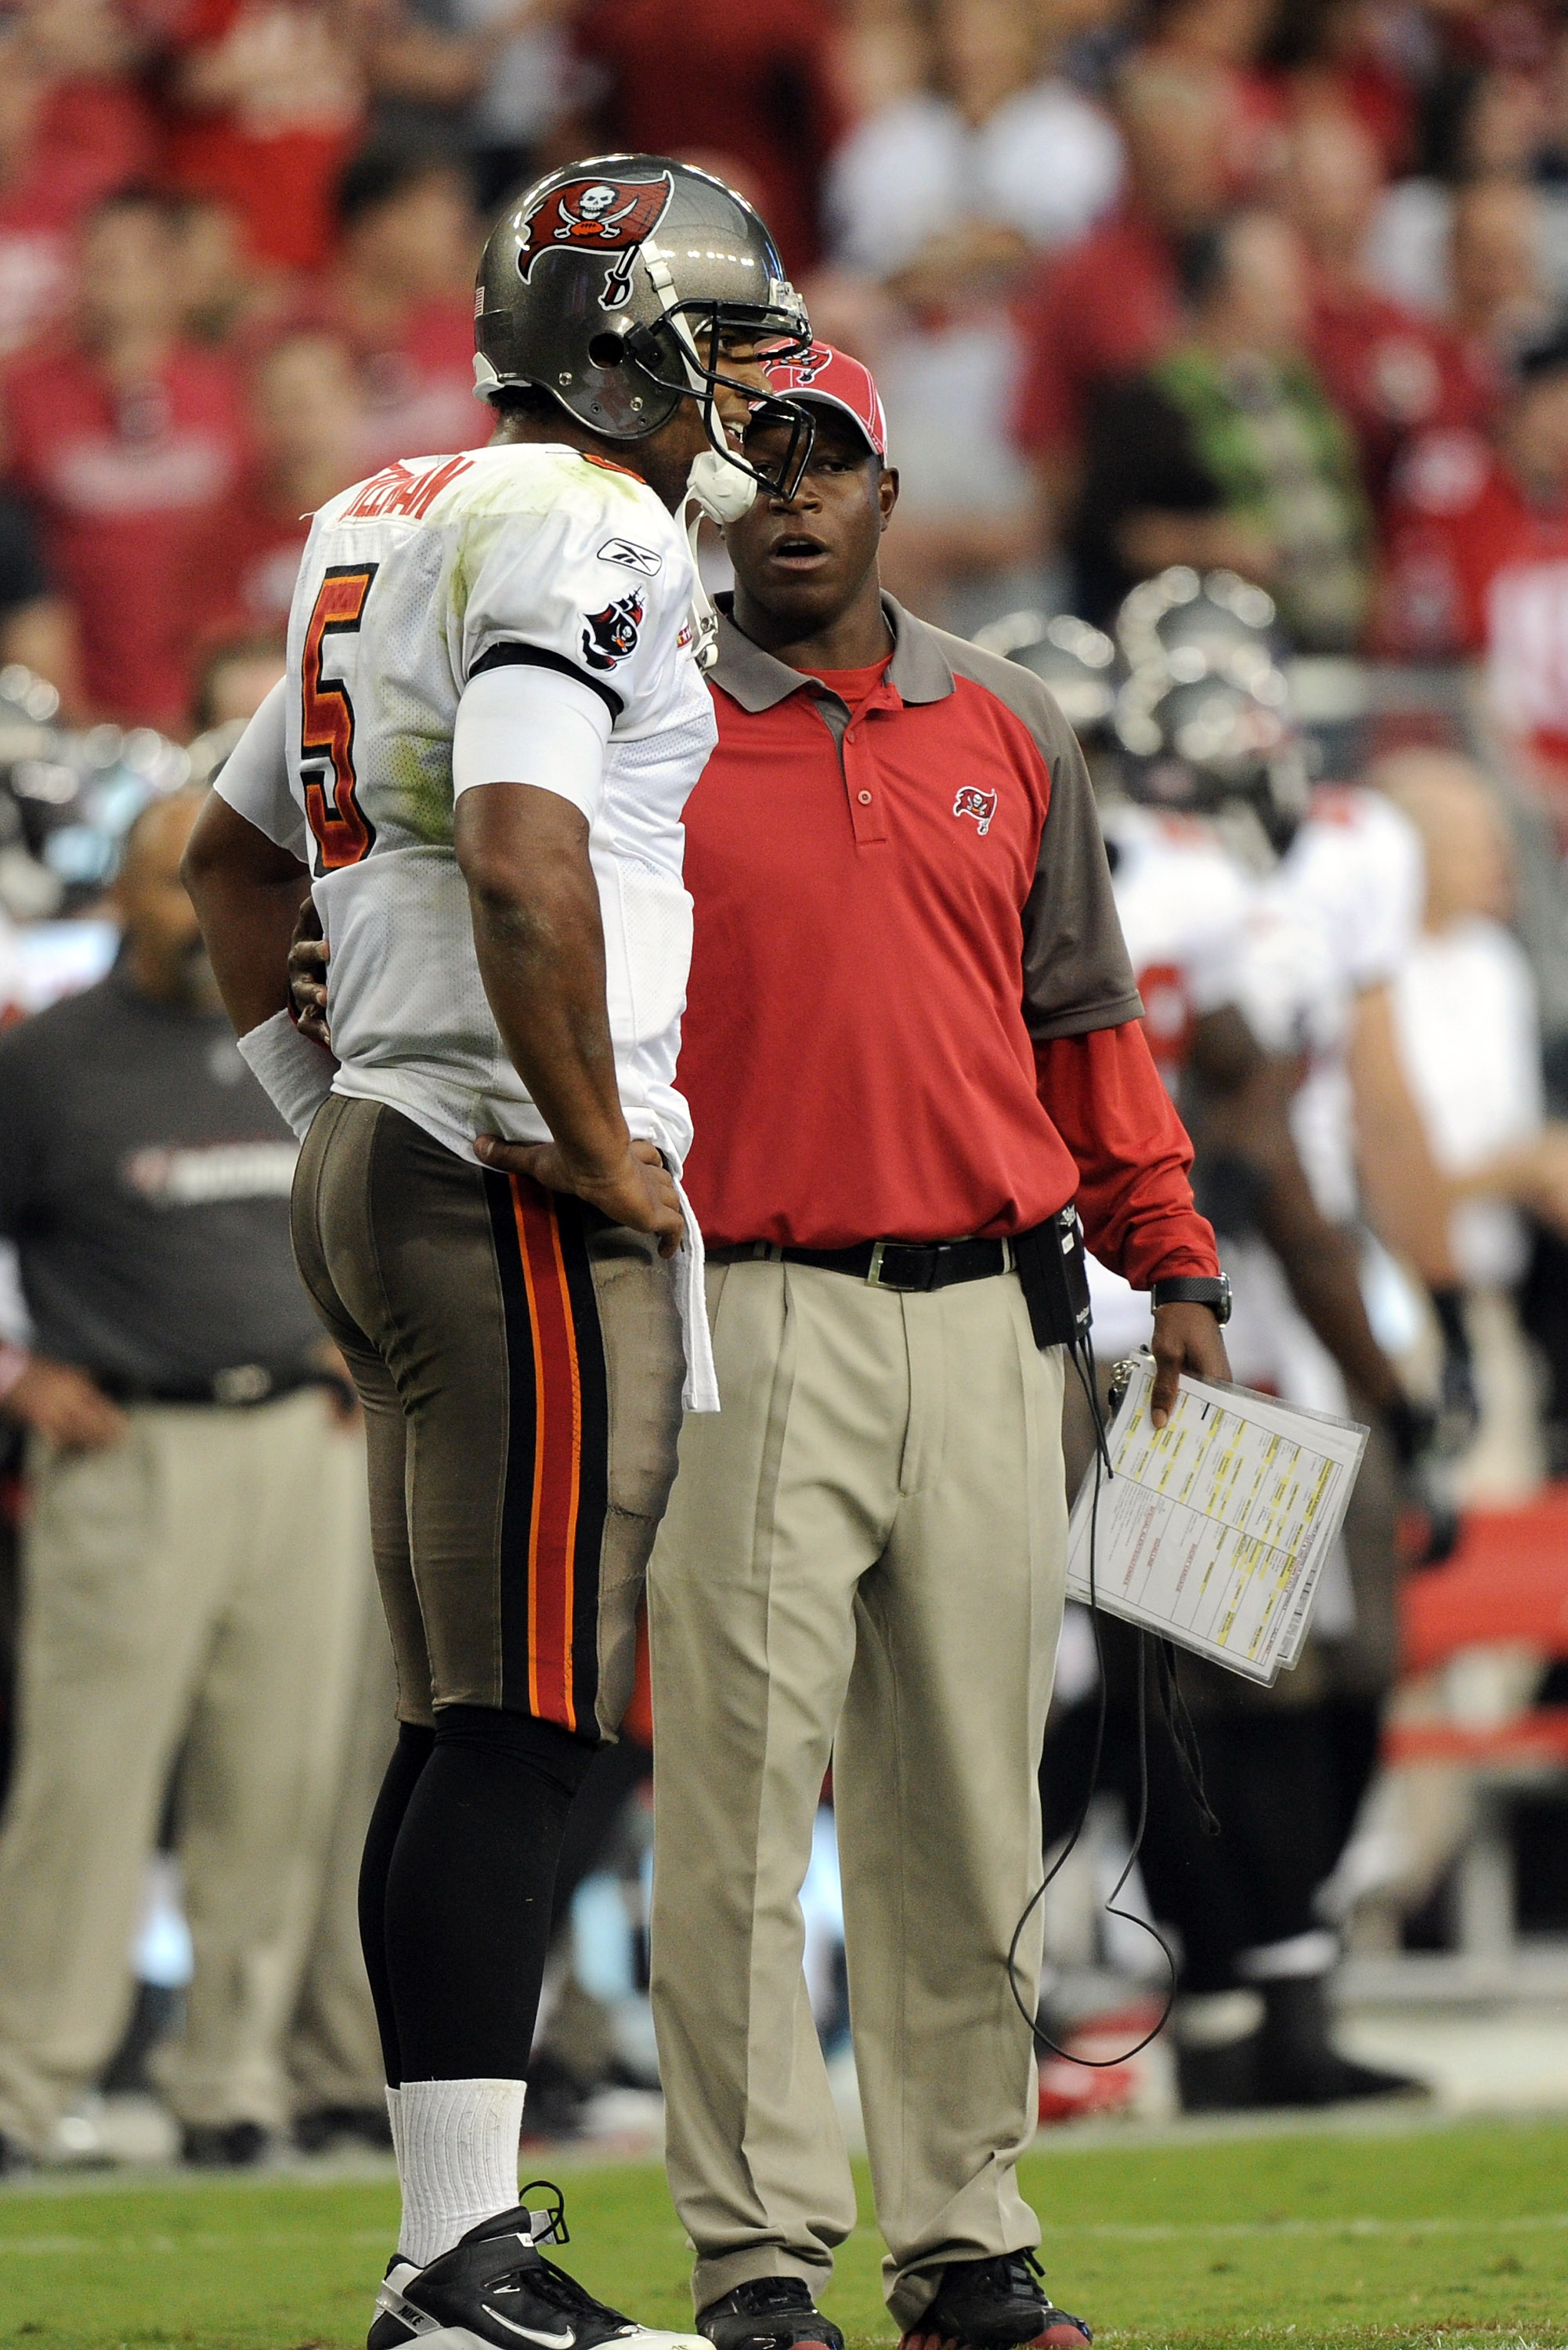 GLENDALE, AZ - OCTOBER 31:  Josh Freeman #5 of the Tampa Bay Buccaneers speaks to Head Coach Raheem Morris during a timeout against the Arizona Cardinals at University of Phoenix Stadium on October 31, 2010 in Glendale, Arizona.  (Photo by Harry How/Getty